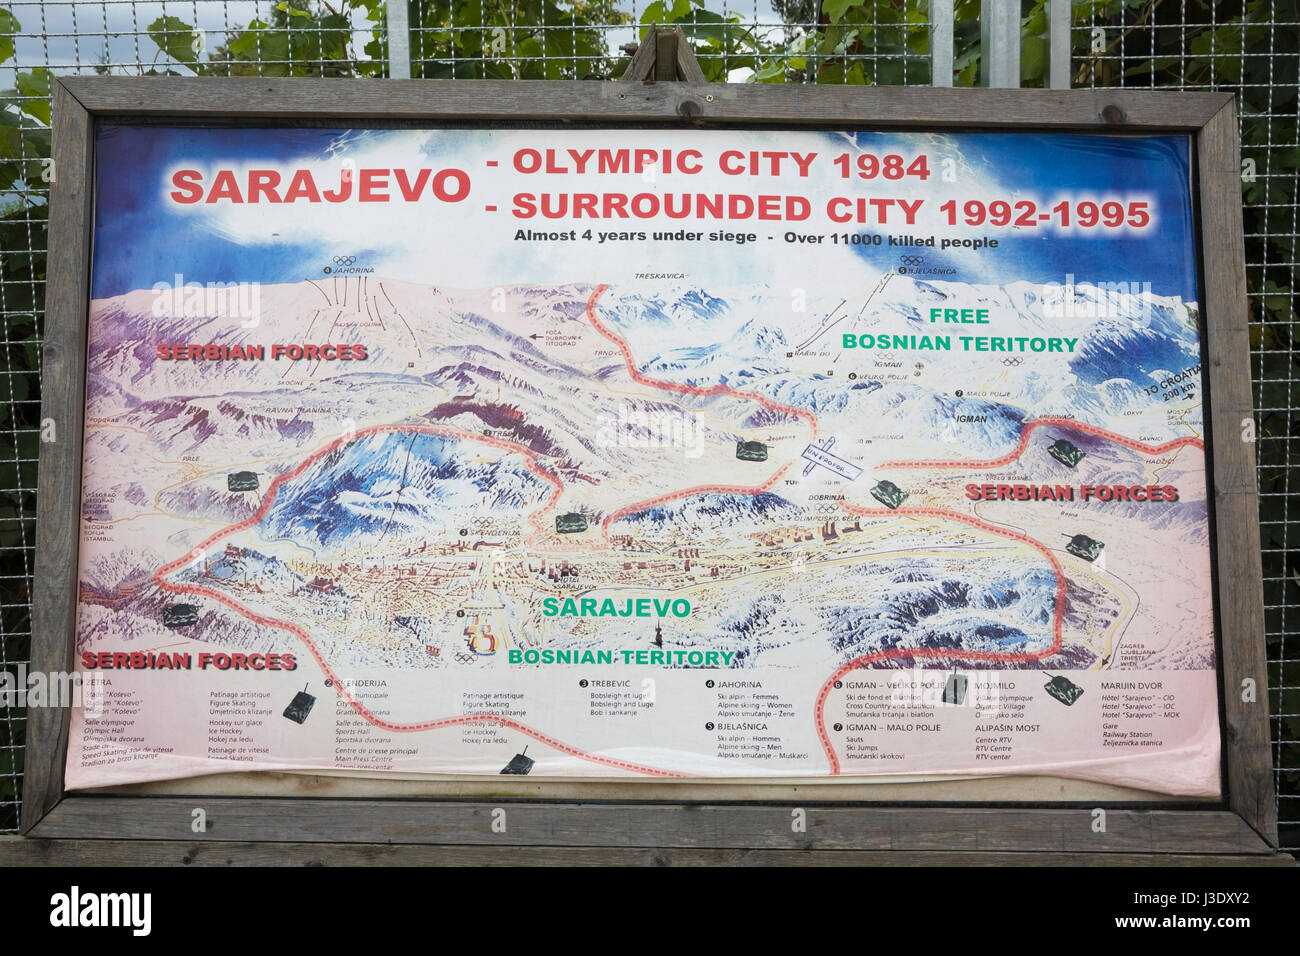 Map of Sarajevo at the war tunnel museum showing how city was surrounded by Serbian forces in the war of 1992-1995. Stock Photo